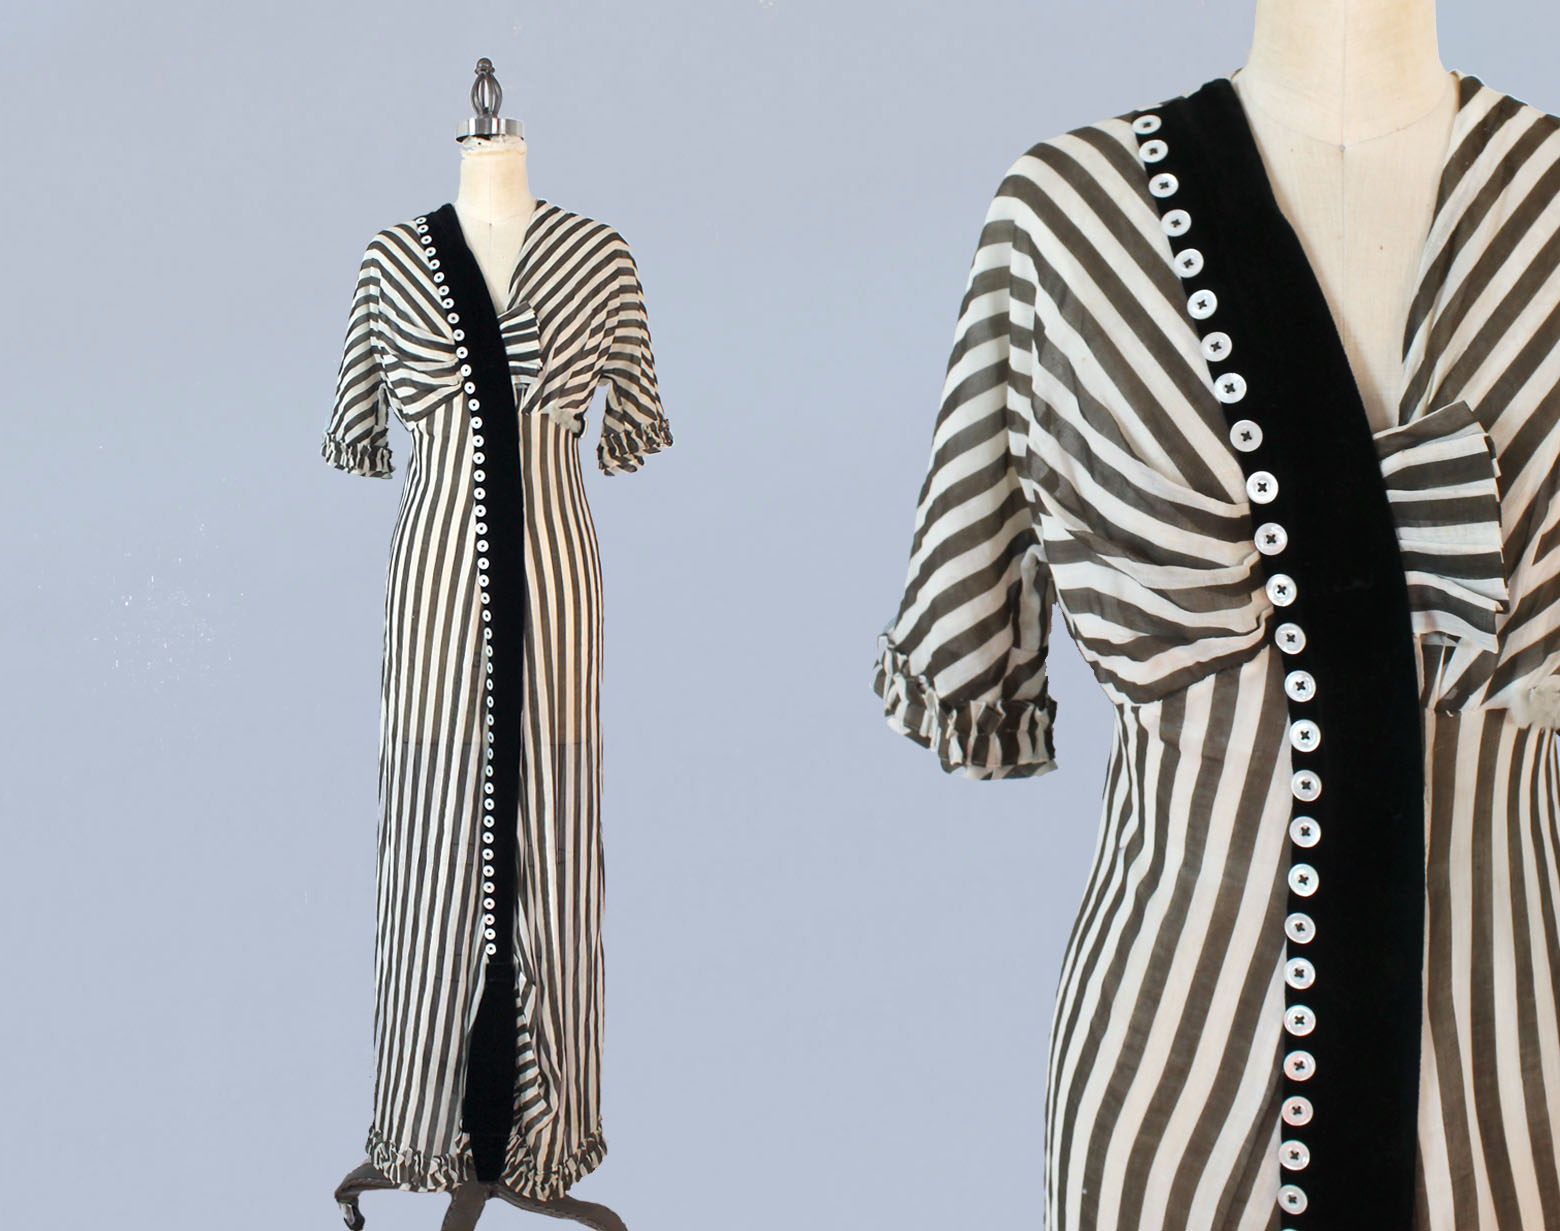 Black and white striped dress. 1910s.